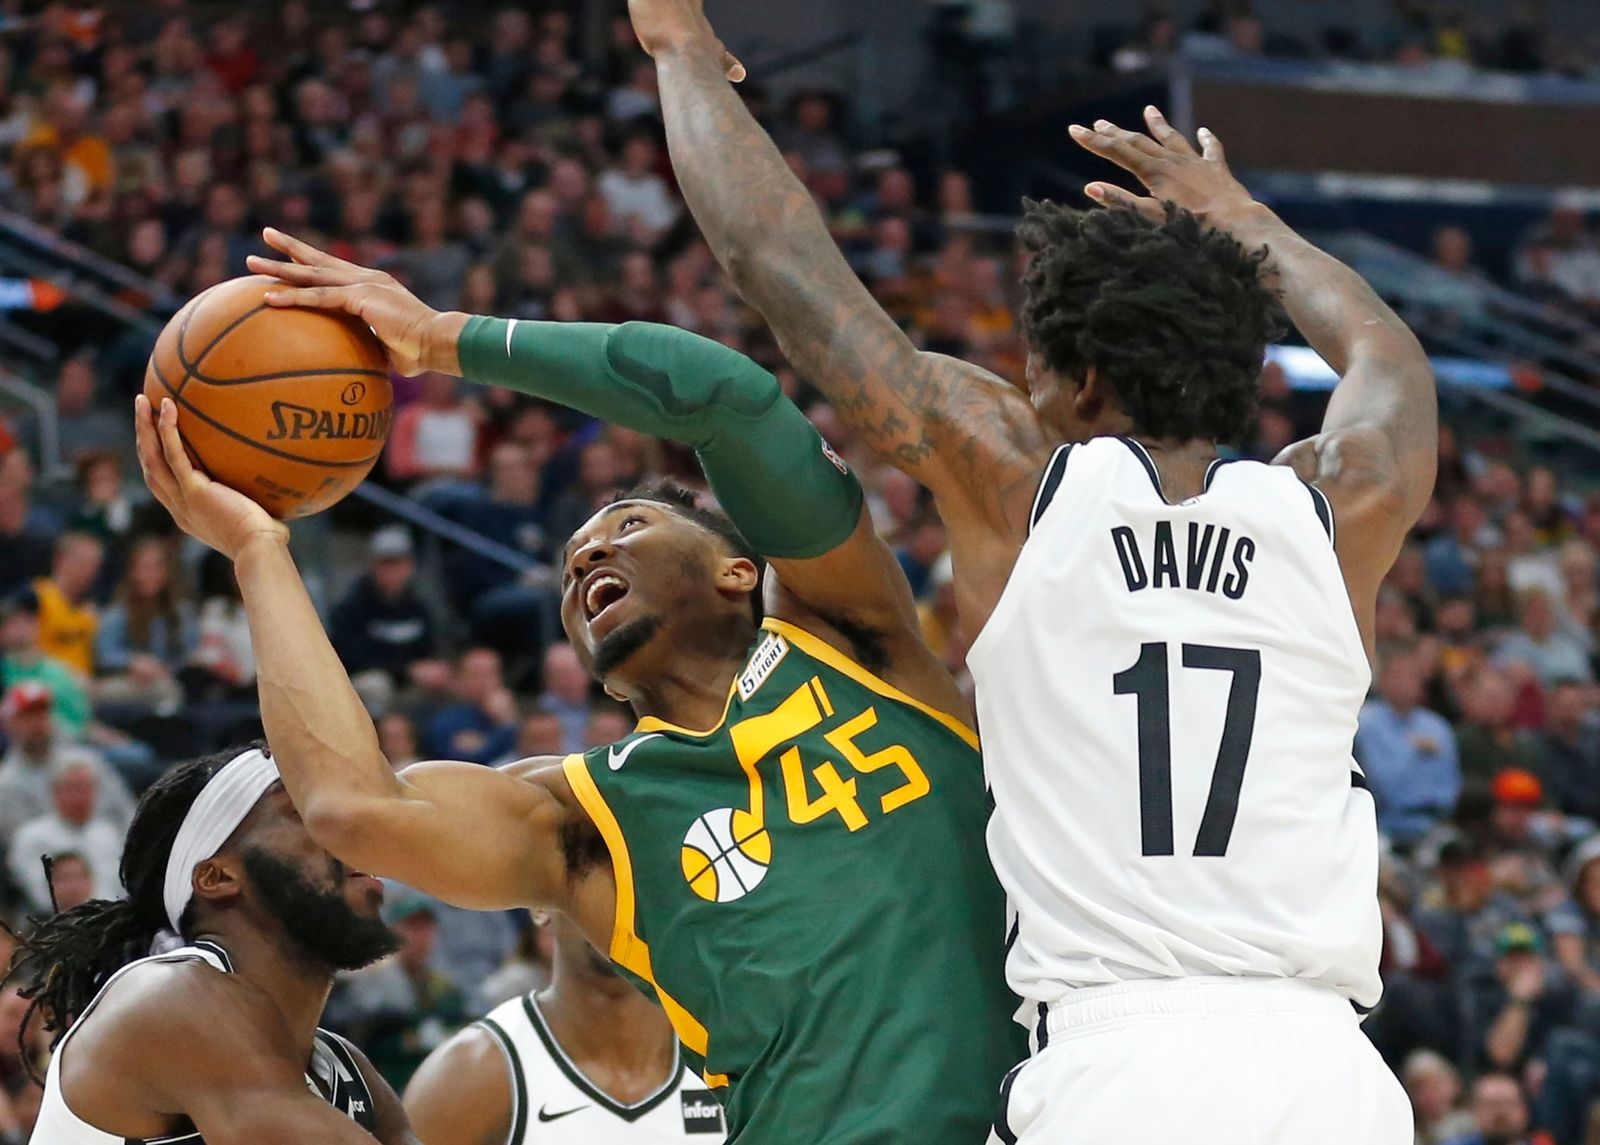 Utah Jazz guard Donovan Mitchell (45) goes to the basket as Brooklyn Nets forward Ed Davis (17) defends during the first half of an NBA basketball game Saturday, March 16, 2019, in Salt Lake City. (AP Photo/Rick Bowmer)